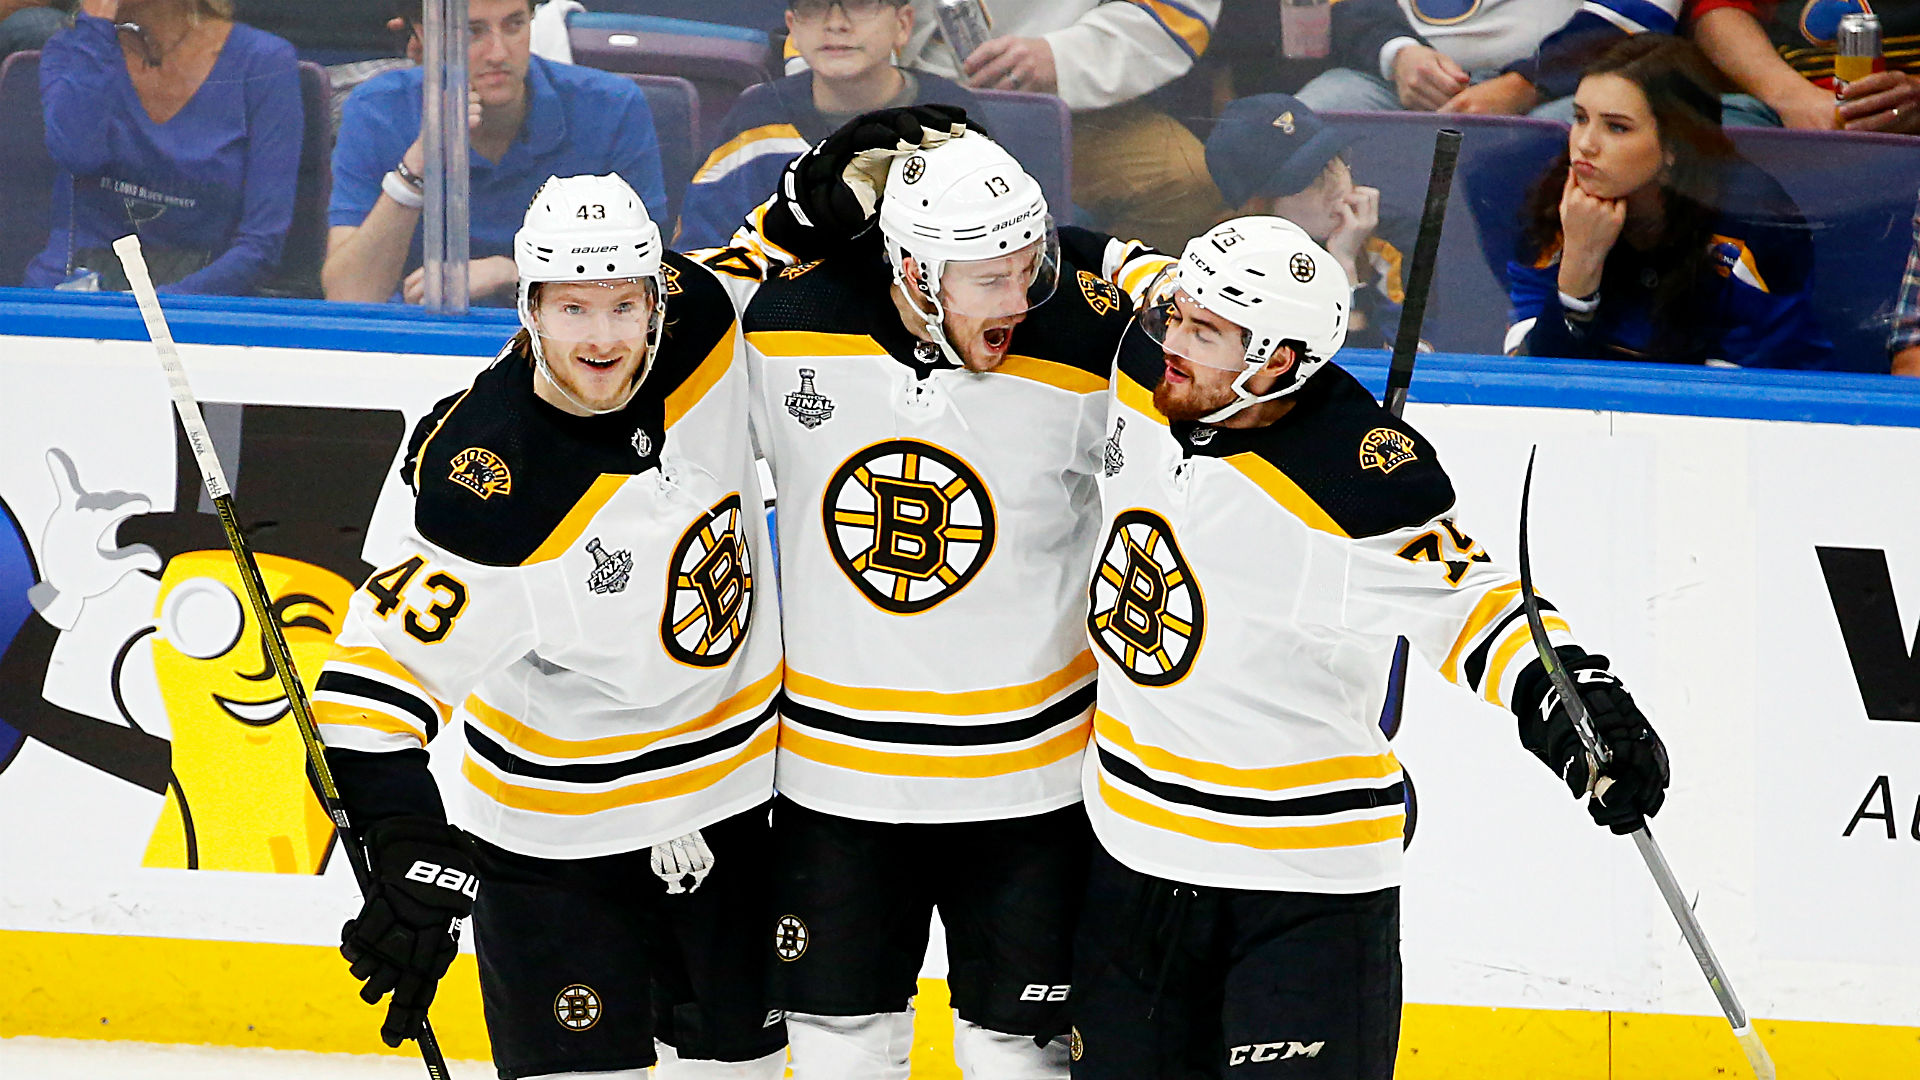 Bruins vs. Blues results: Boston rides offensive explosion ...Bruins Score